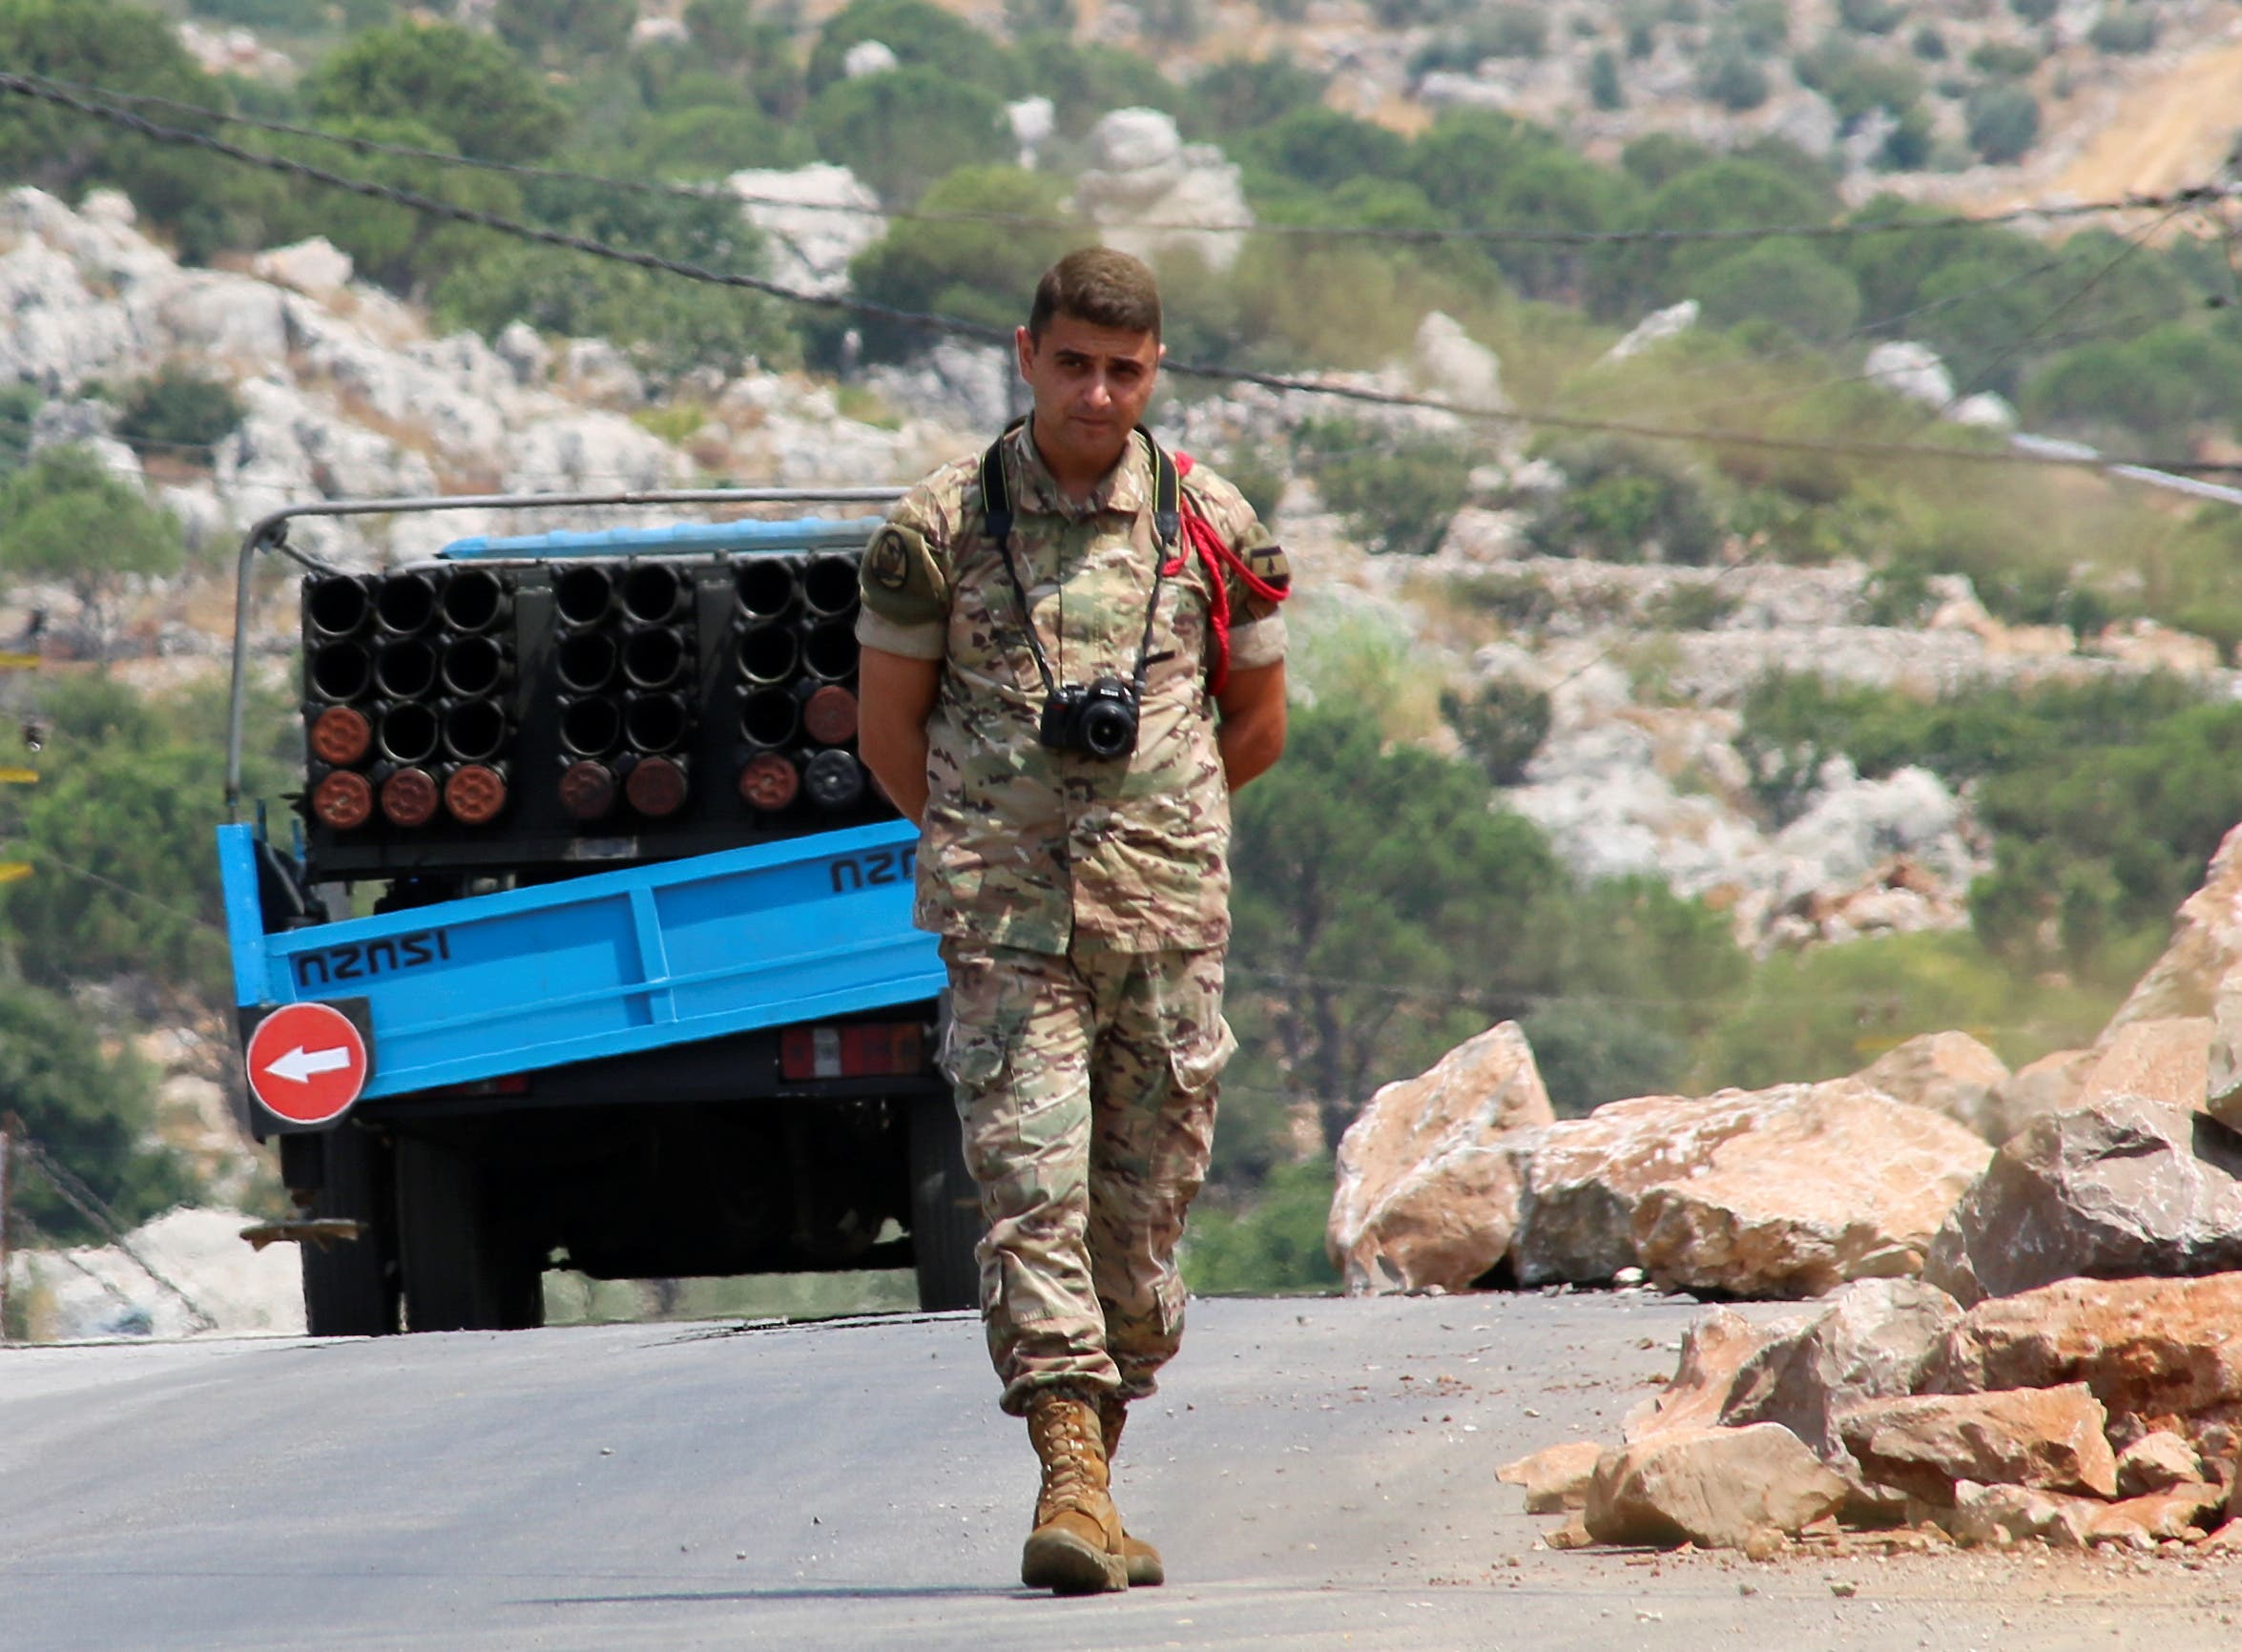 A Lebanese army member walks near a pickup truck with a rocket launcher in Chouaya, Lebanon, August 6, 2021. (File photo: Reuters)